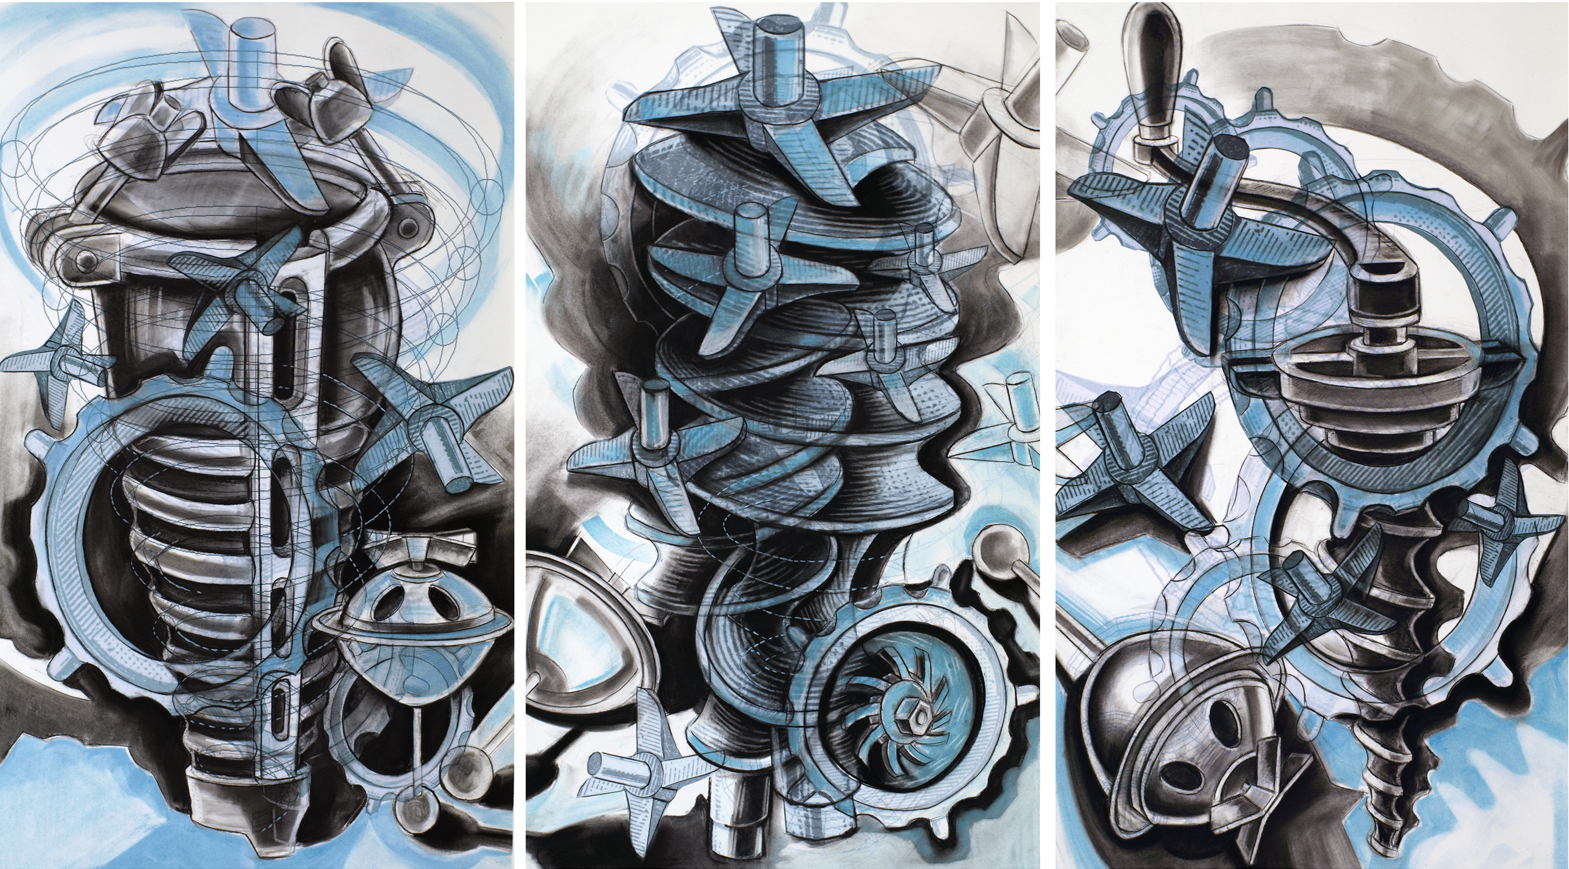 Enterprising Machines,  2014, Charcoal, pastel and digital print, 46 x 78 inches